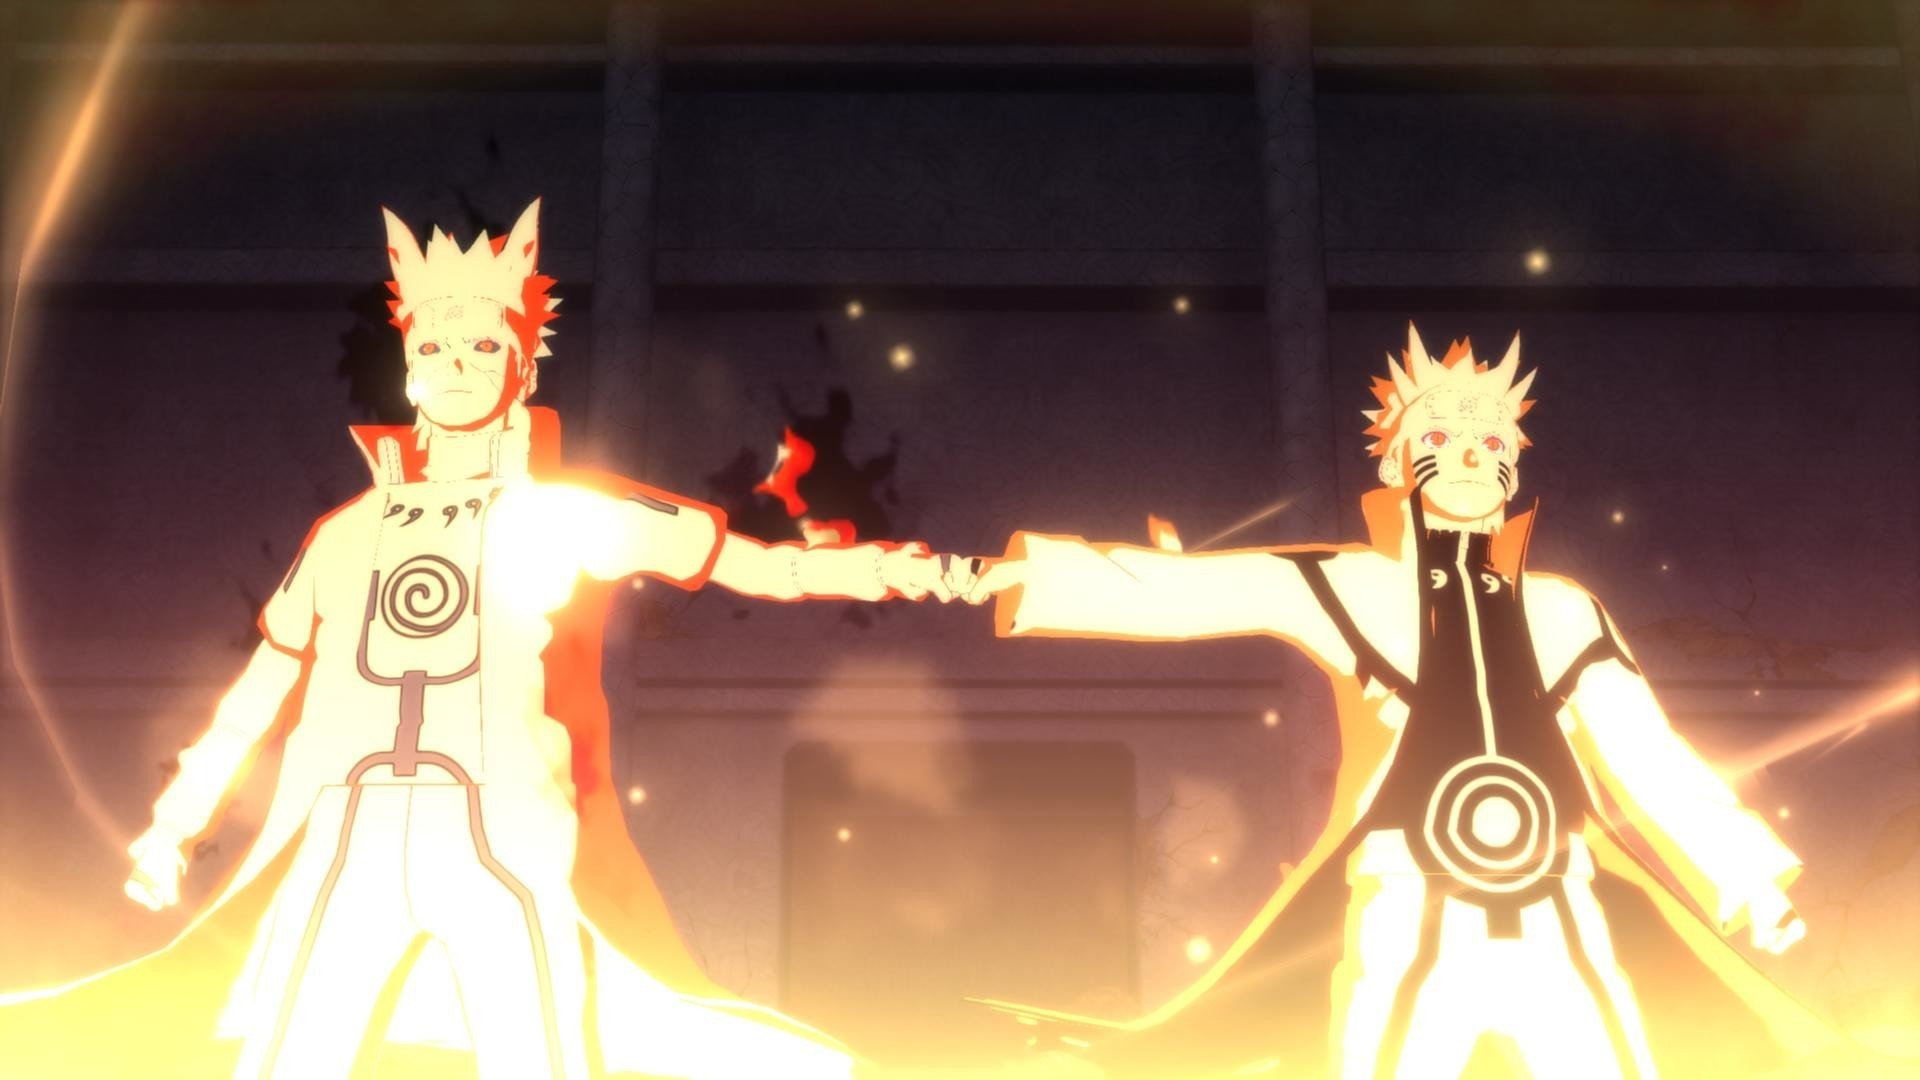 Res: 1920x1080, 1920x1200 Desktop Minato Namikaze Hd Backgrounds Abyss With Naruto Jiraiya  Wallpaper for Pc Thumb